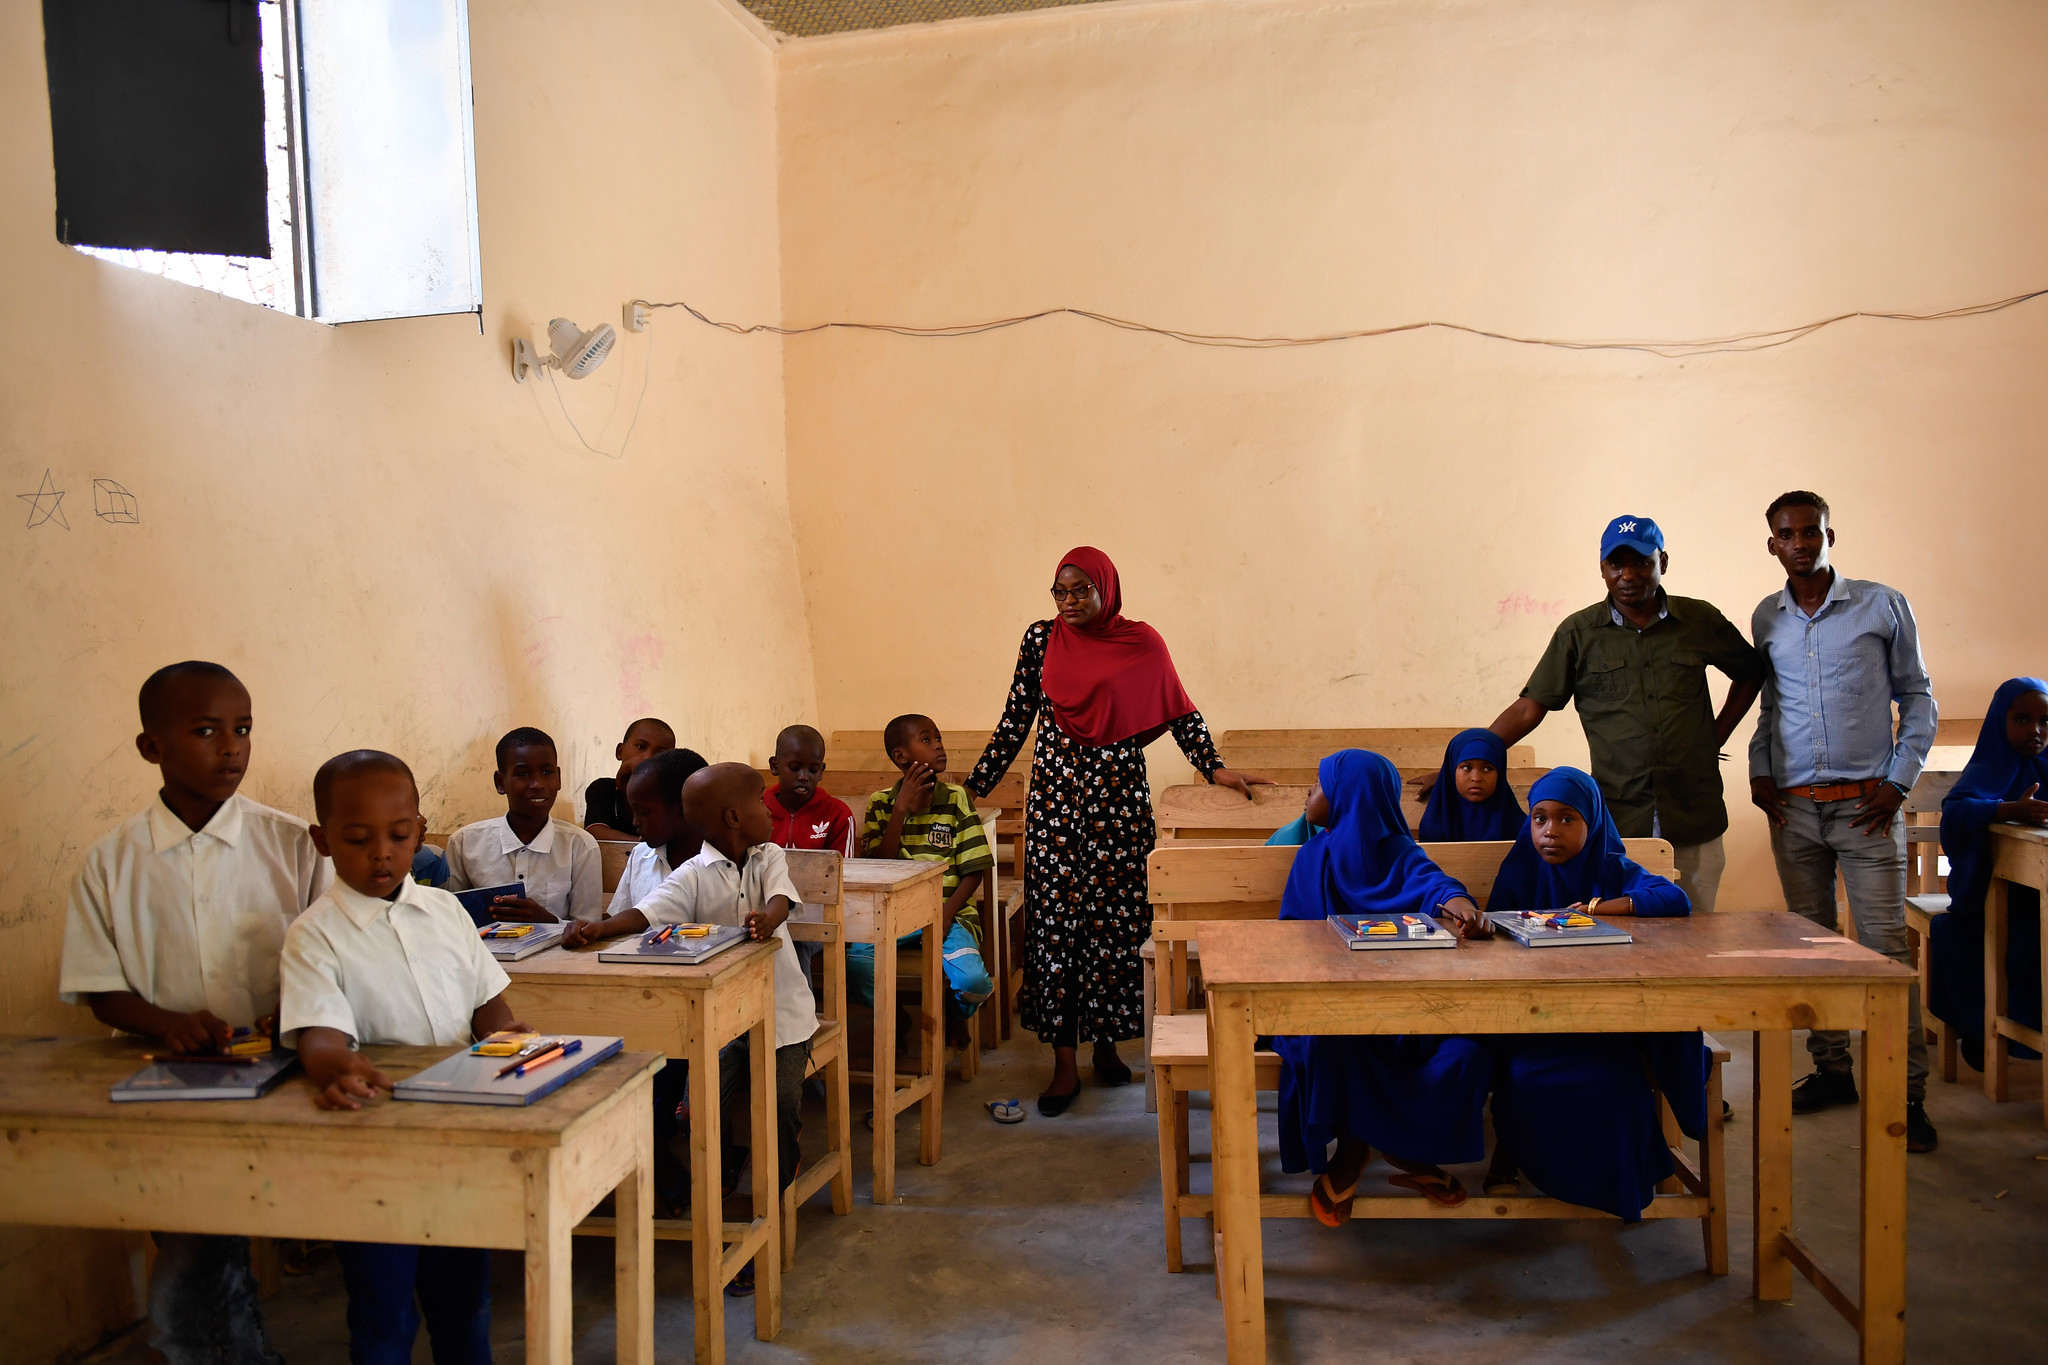 Ulrike Kahbila Mbuton, the AMISOM Human Rights Officer, stands amongst pupils at Qamar Primary School, after the AMISOM team donated an assortment of stationery to the school in Mogadishu on 19 December 2019. The school was renovated by AMISOM following several terrorist attacks in Mogadishu that destroyed it, leading to its closure in 2016. AMISOM Photo / Omar Abdisalan